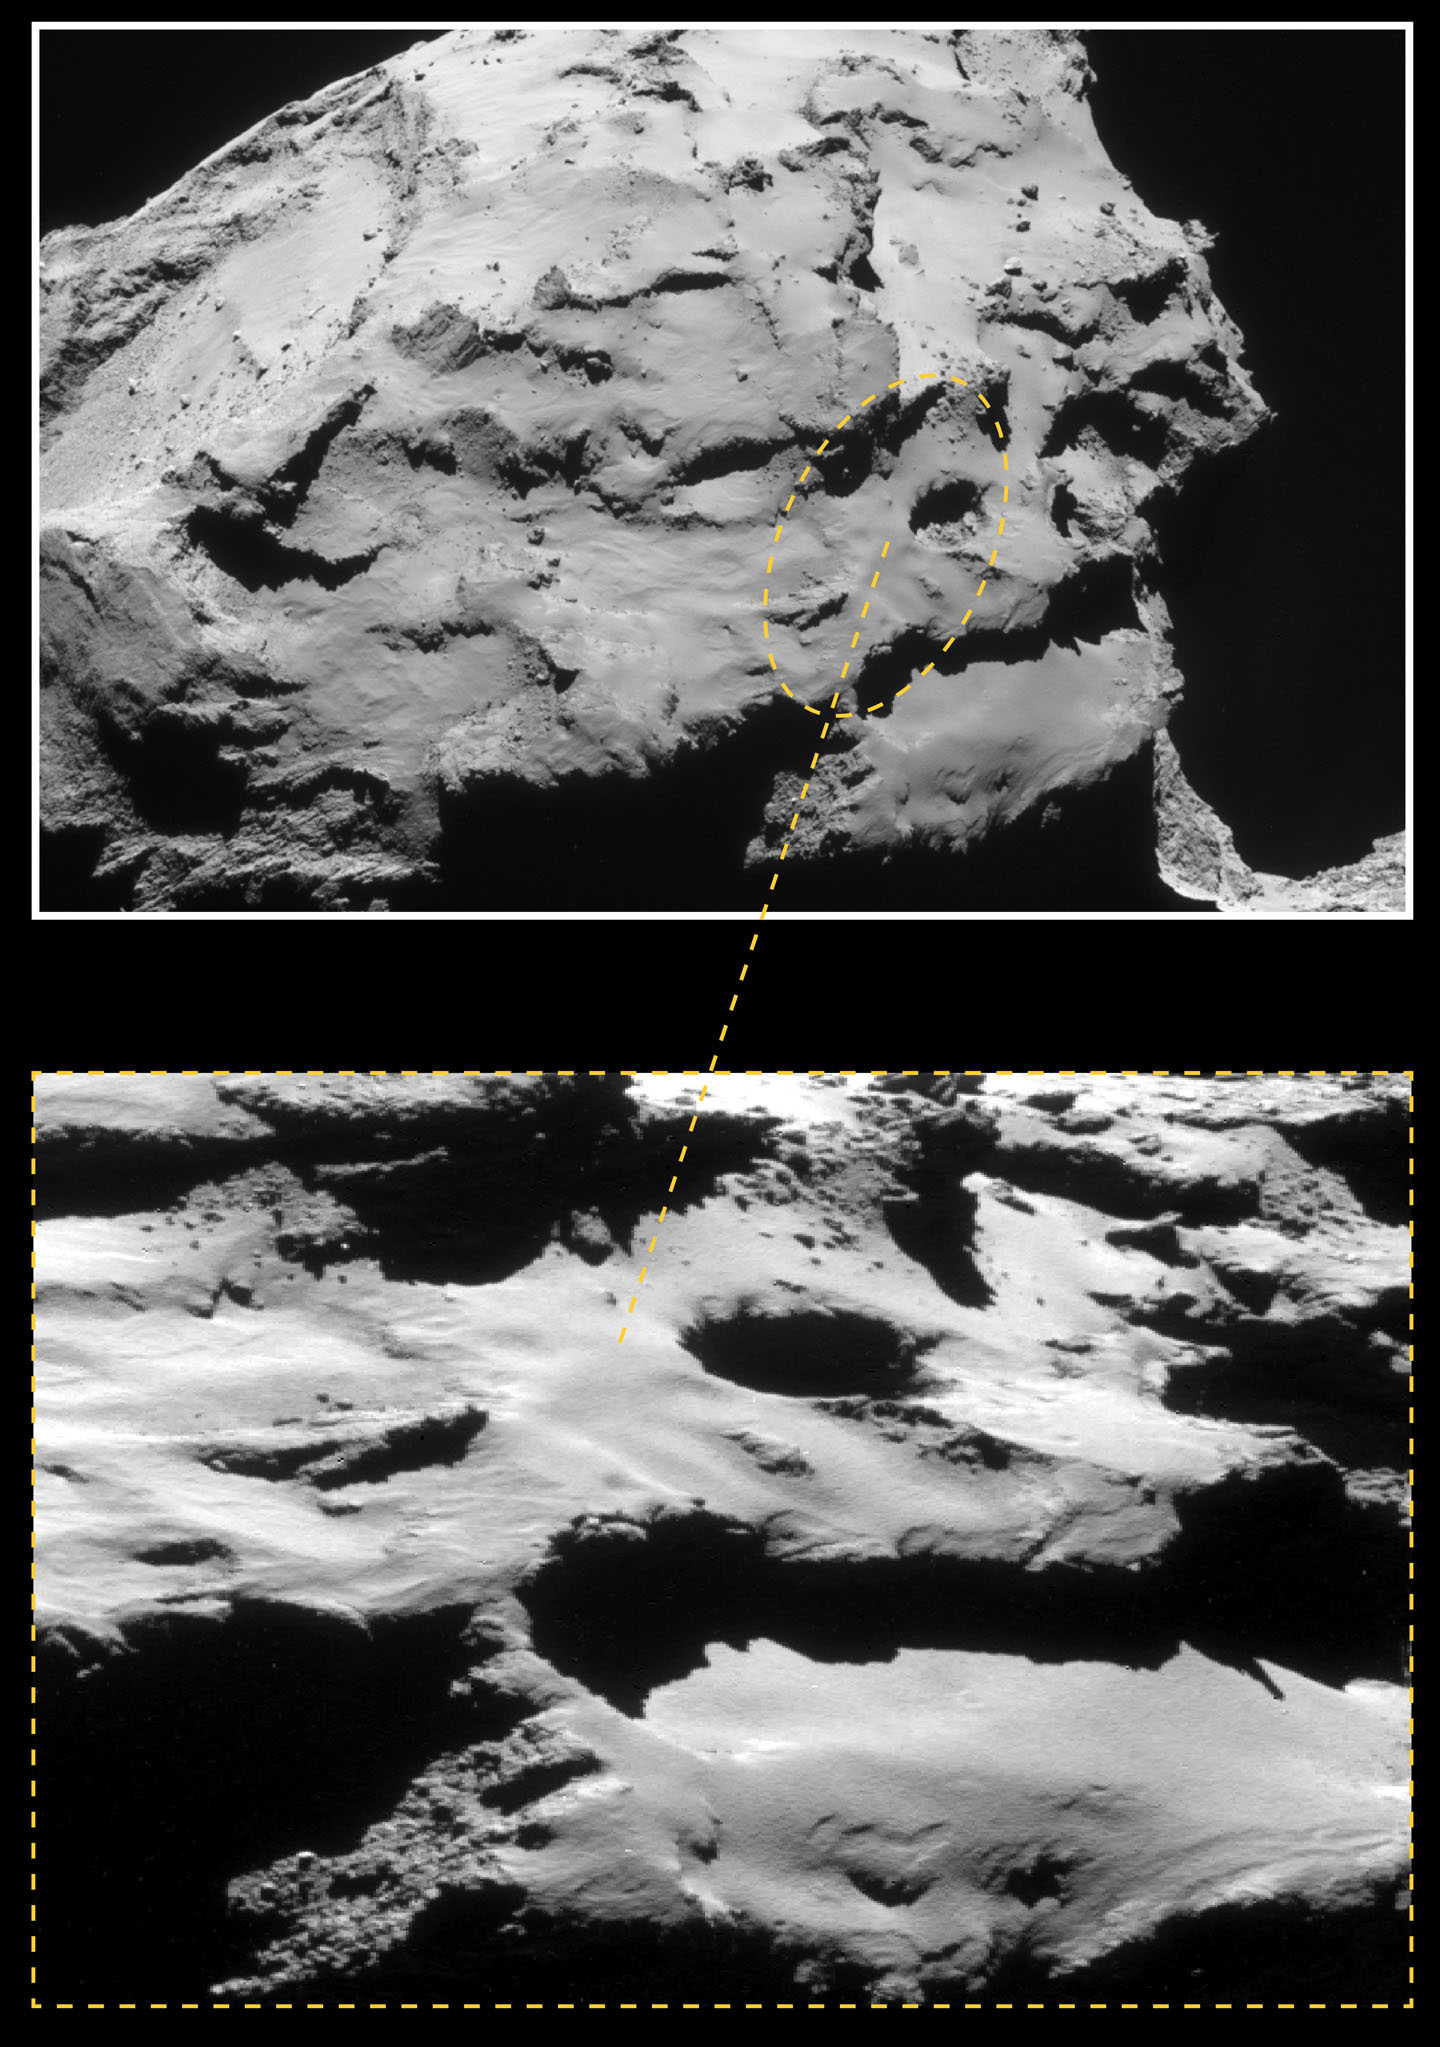 Rosetta is targeted to land at the site within this planned impact ellipse in the Ma'at region on the comet's smaller lobe. See below for a closer view. - Credit: ESA/Rosetta/NAVCAM – CC BY-SA IGO 3.0